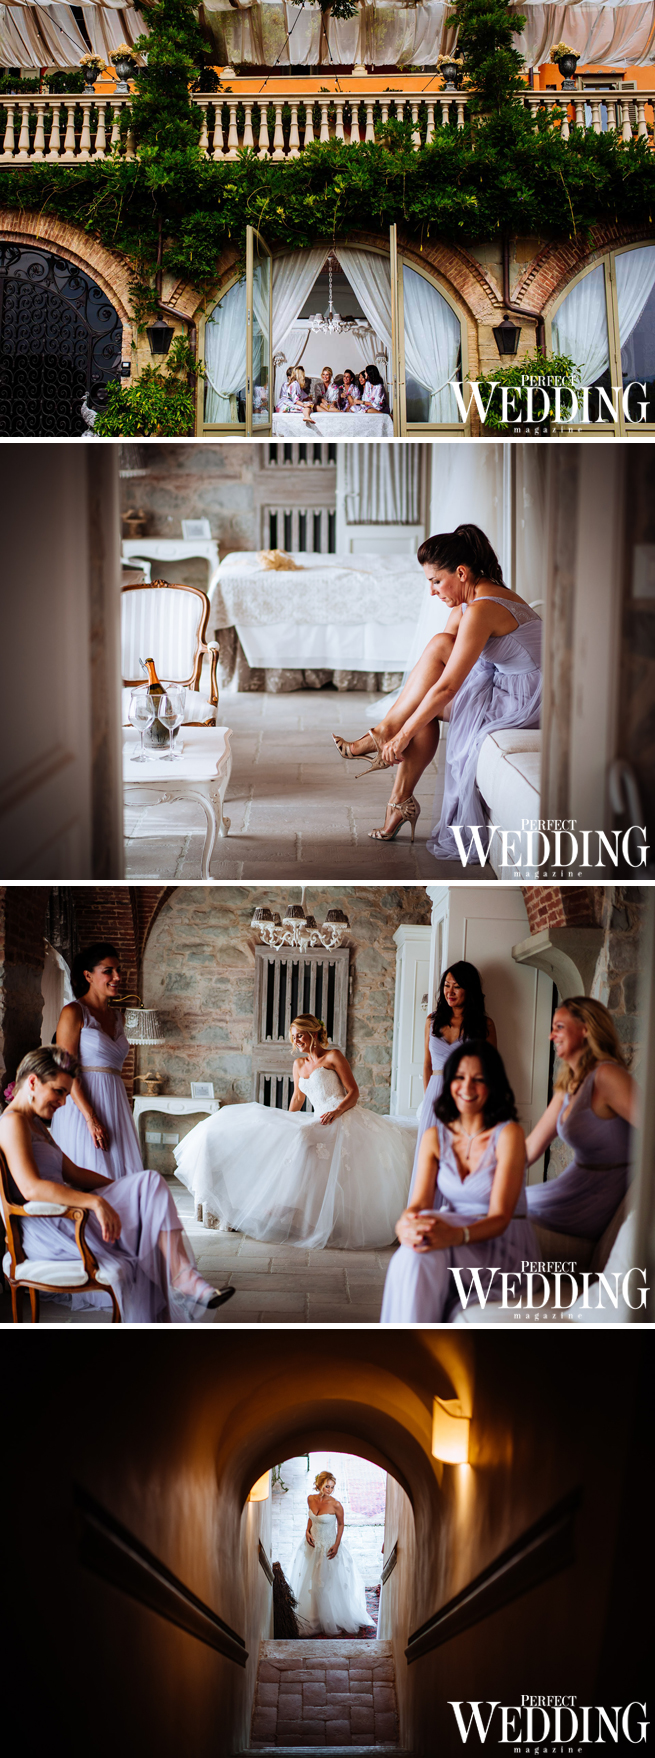 Villa Le Fontanelle, Galeteo Catering, Giardino delle fate, Monique Lhuillier Bride, Liam Collard, Liam Collard Photography, Destination Wedding, Wedding in Italy, Wedding in Florence, Perfect Wedding Magazine, Perfect Wedding Blog,